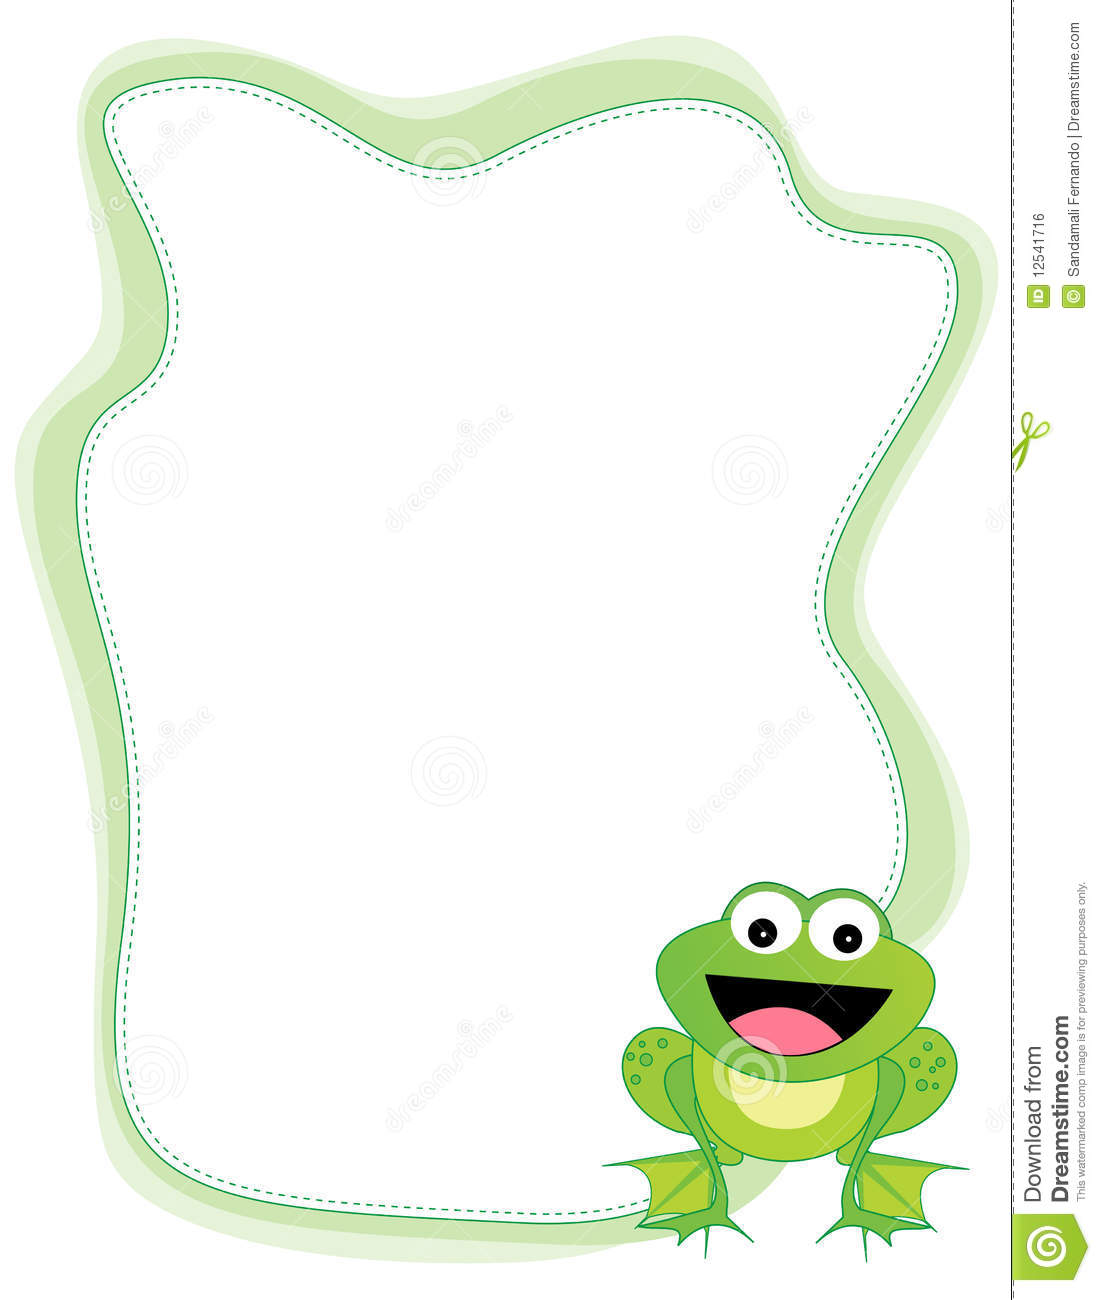 Frog Border Royalty Free Stock Image.